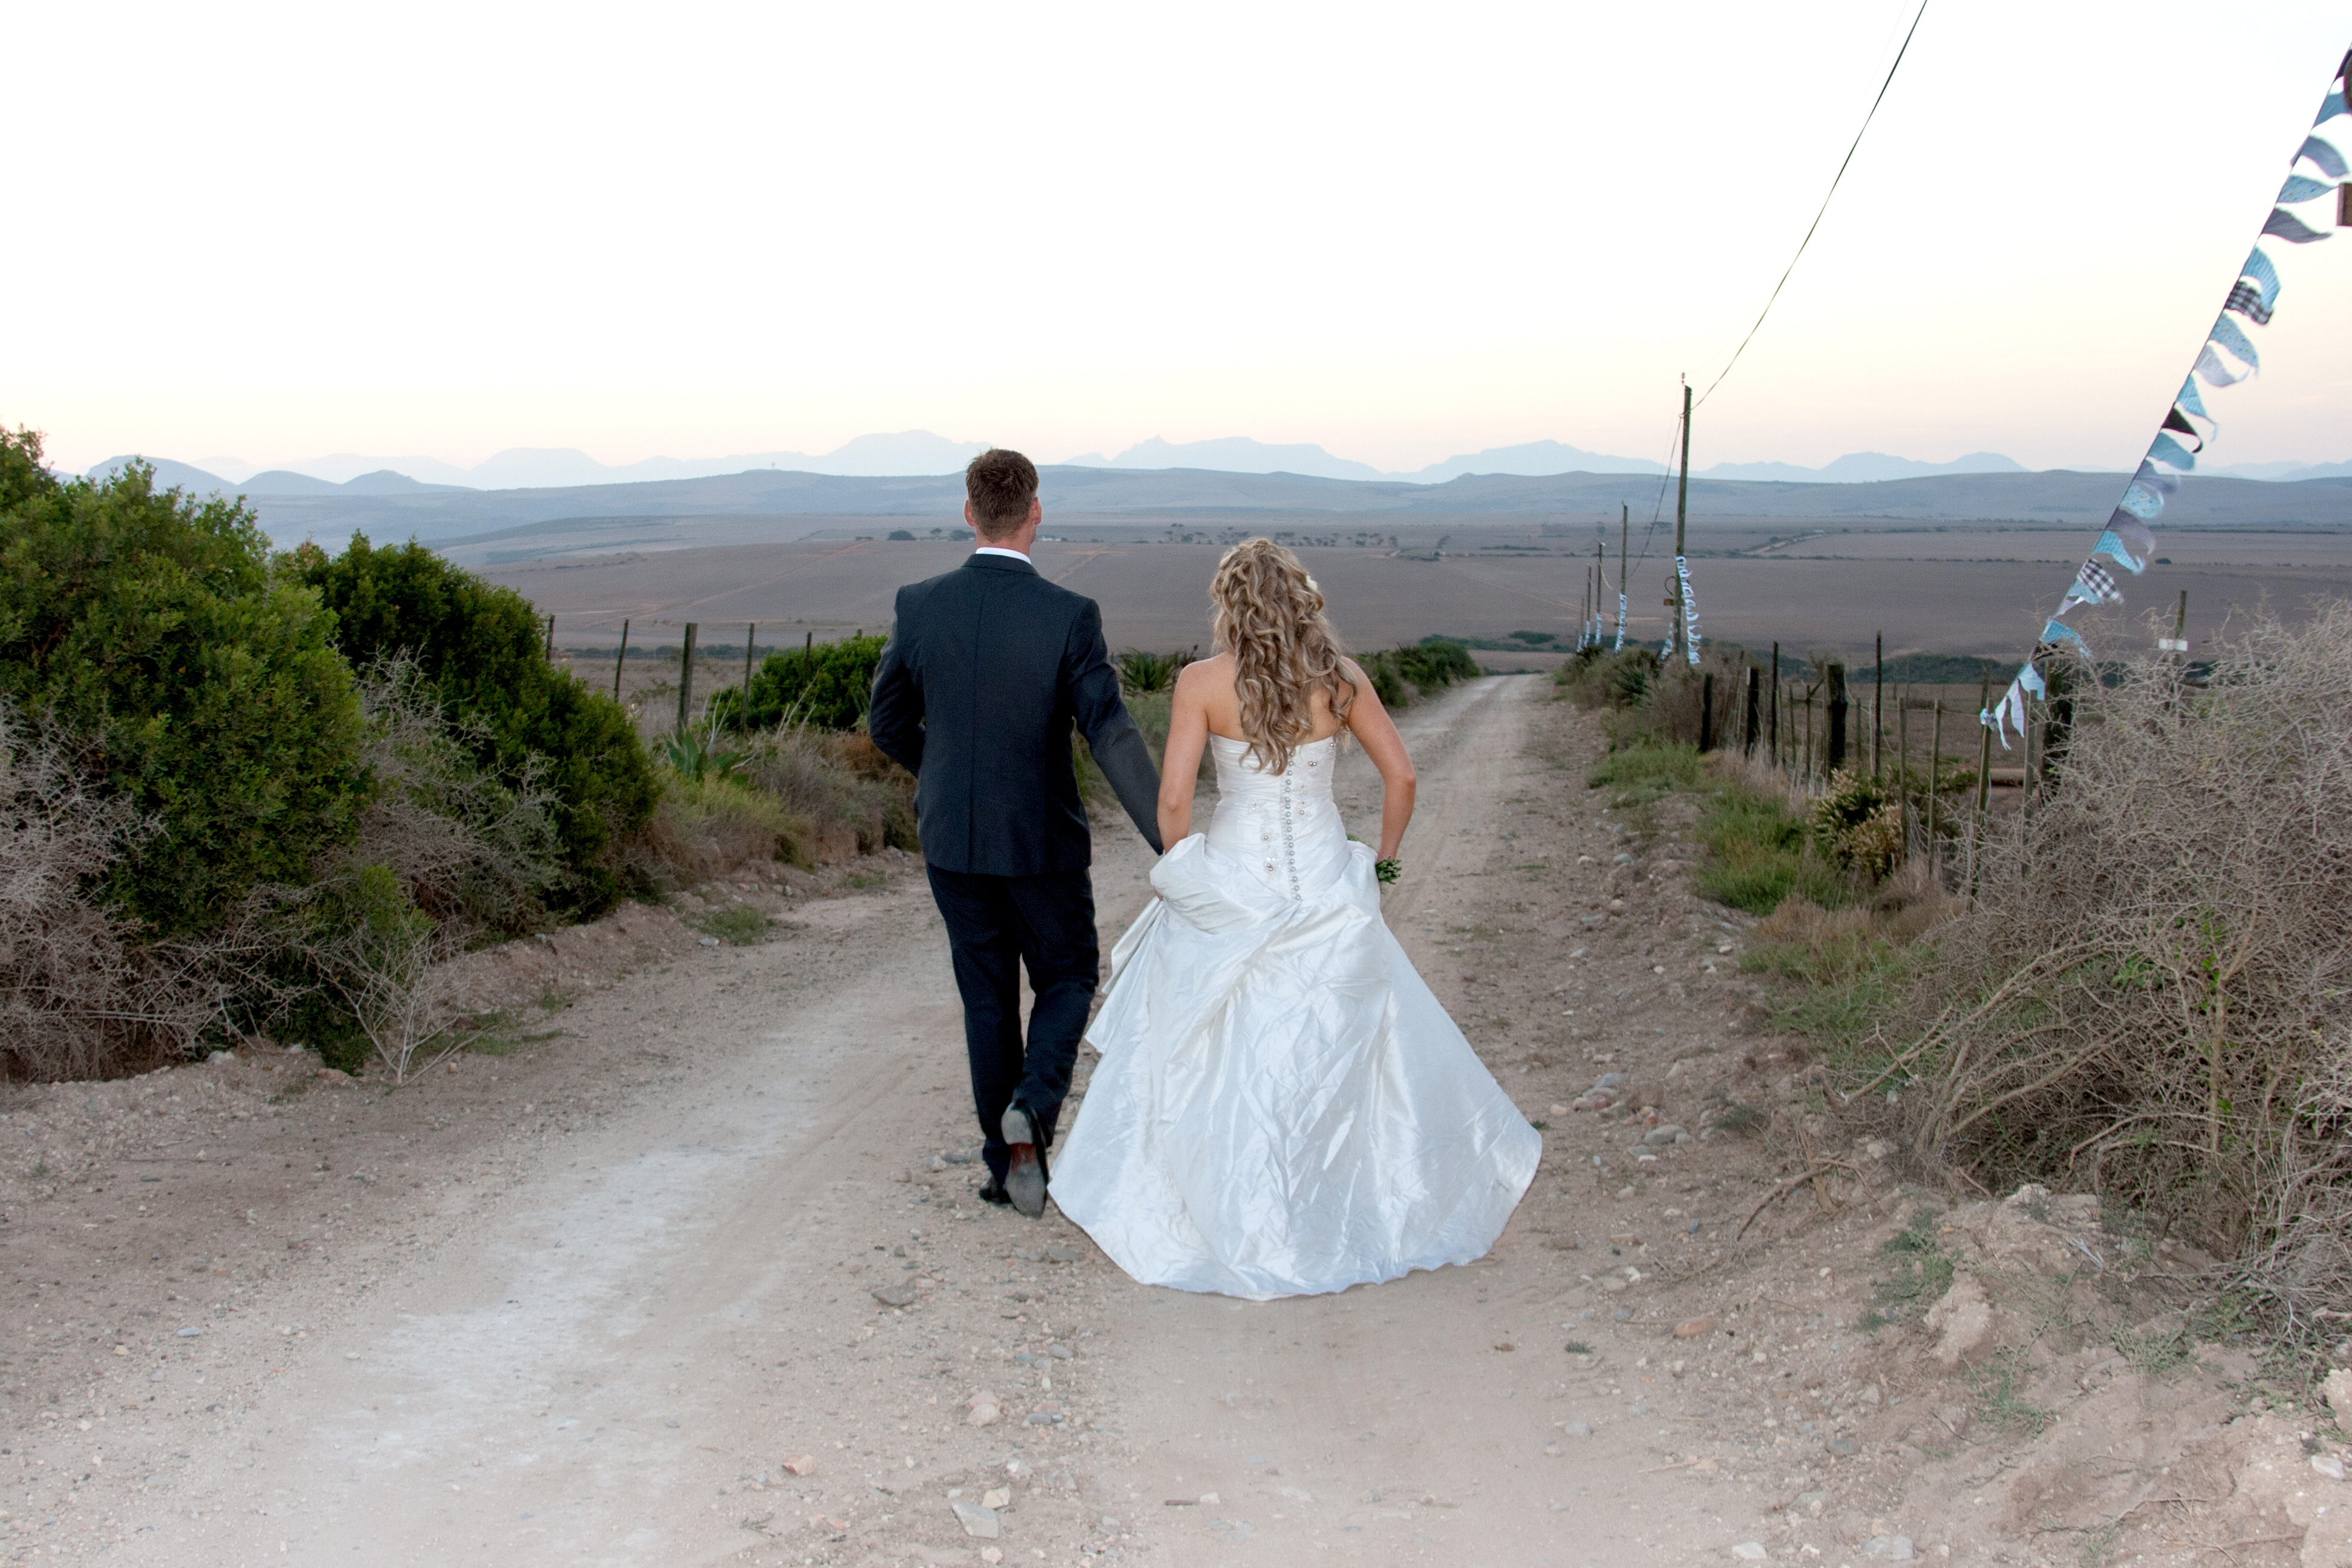 wedding couple walking down a dirt road